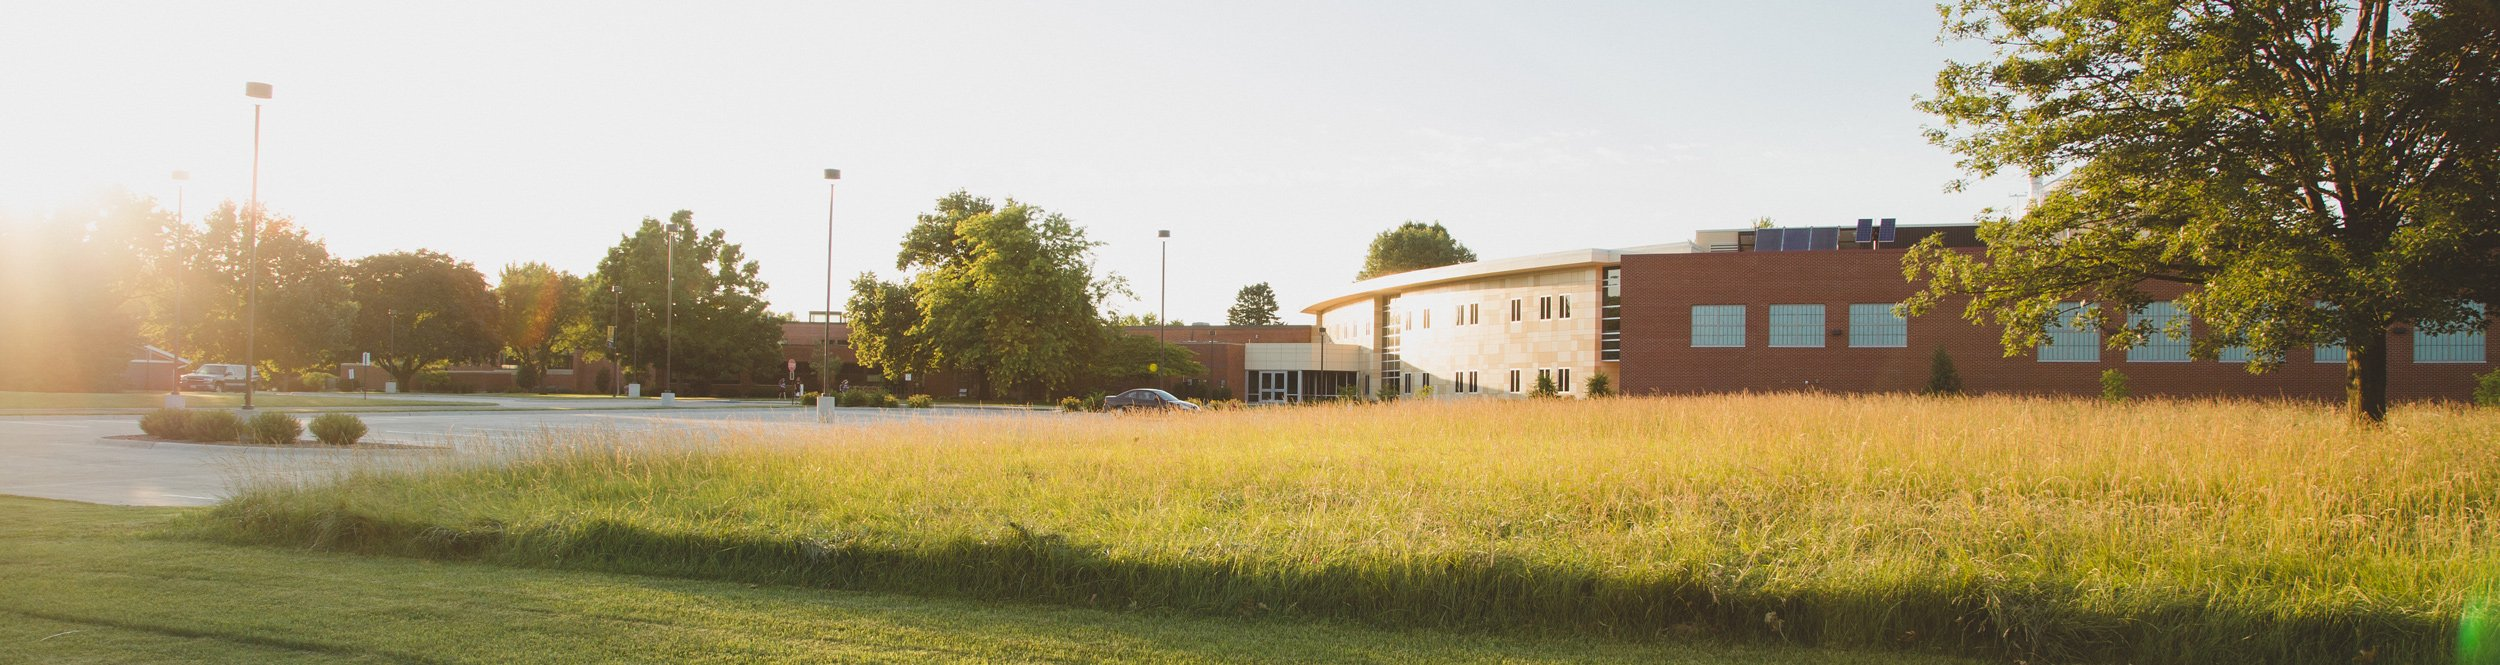 A large building behind grass.